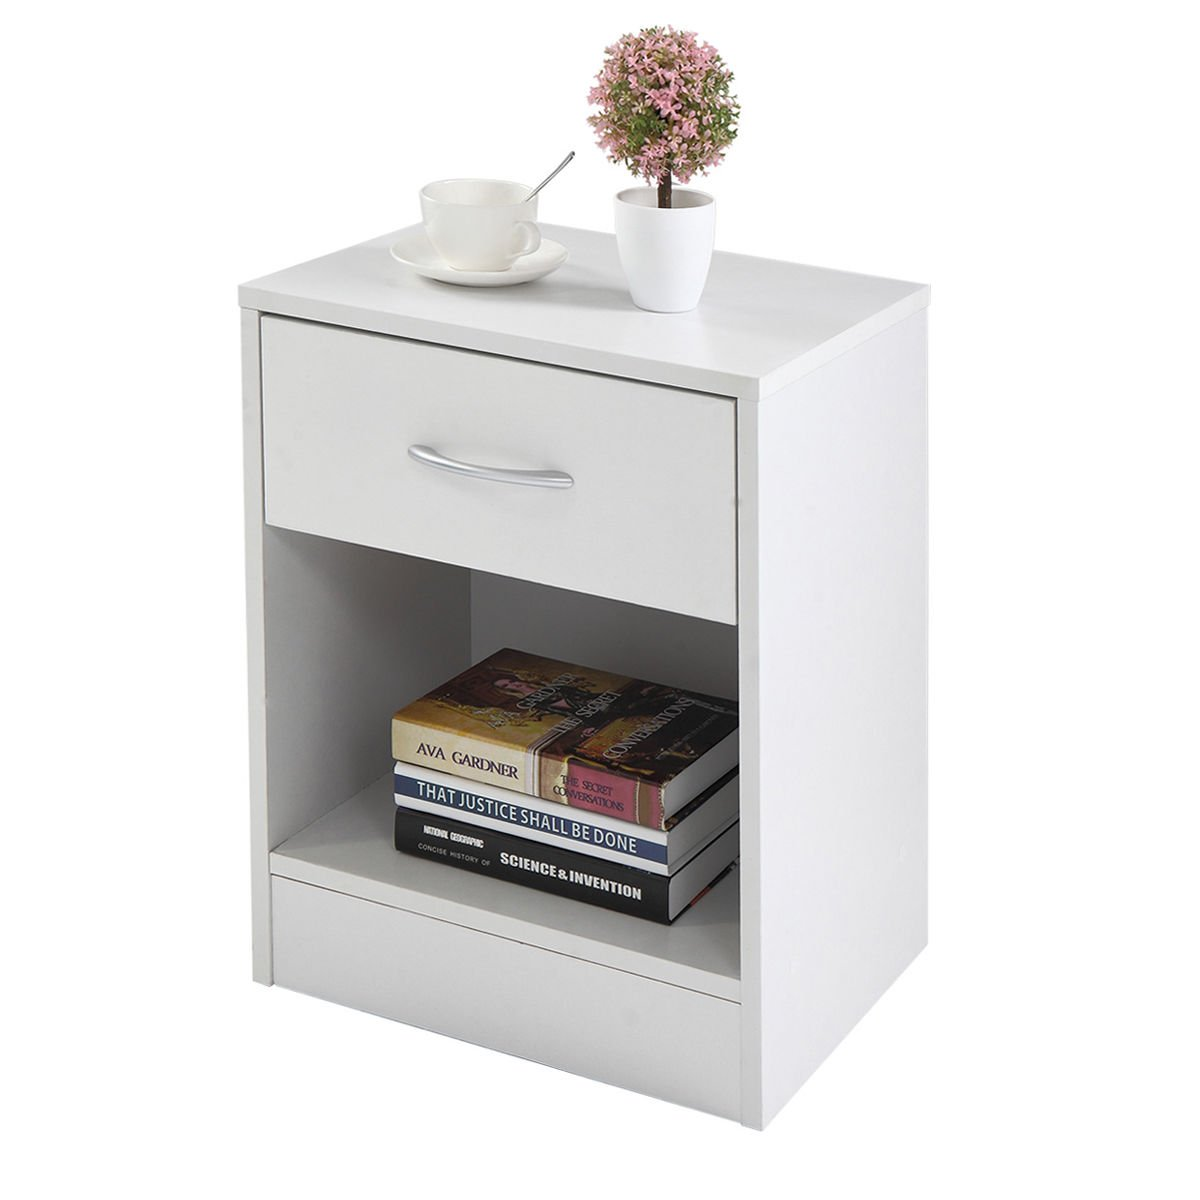 New Set of 2 White Bedroom Night Stand Bedside Table Furniture Open Storage W/ Drawer Storage by totoshoptable